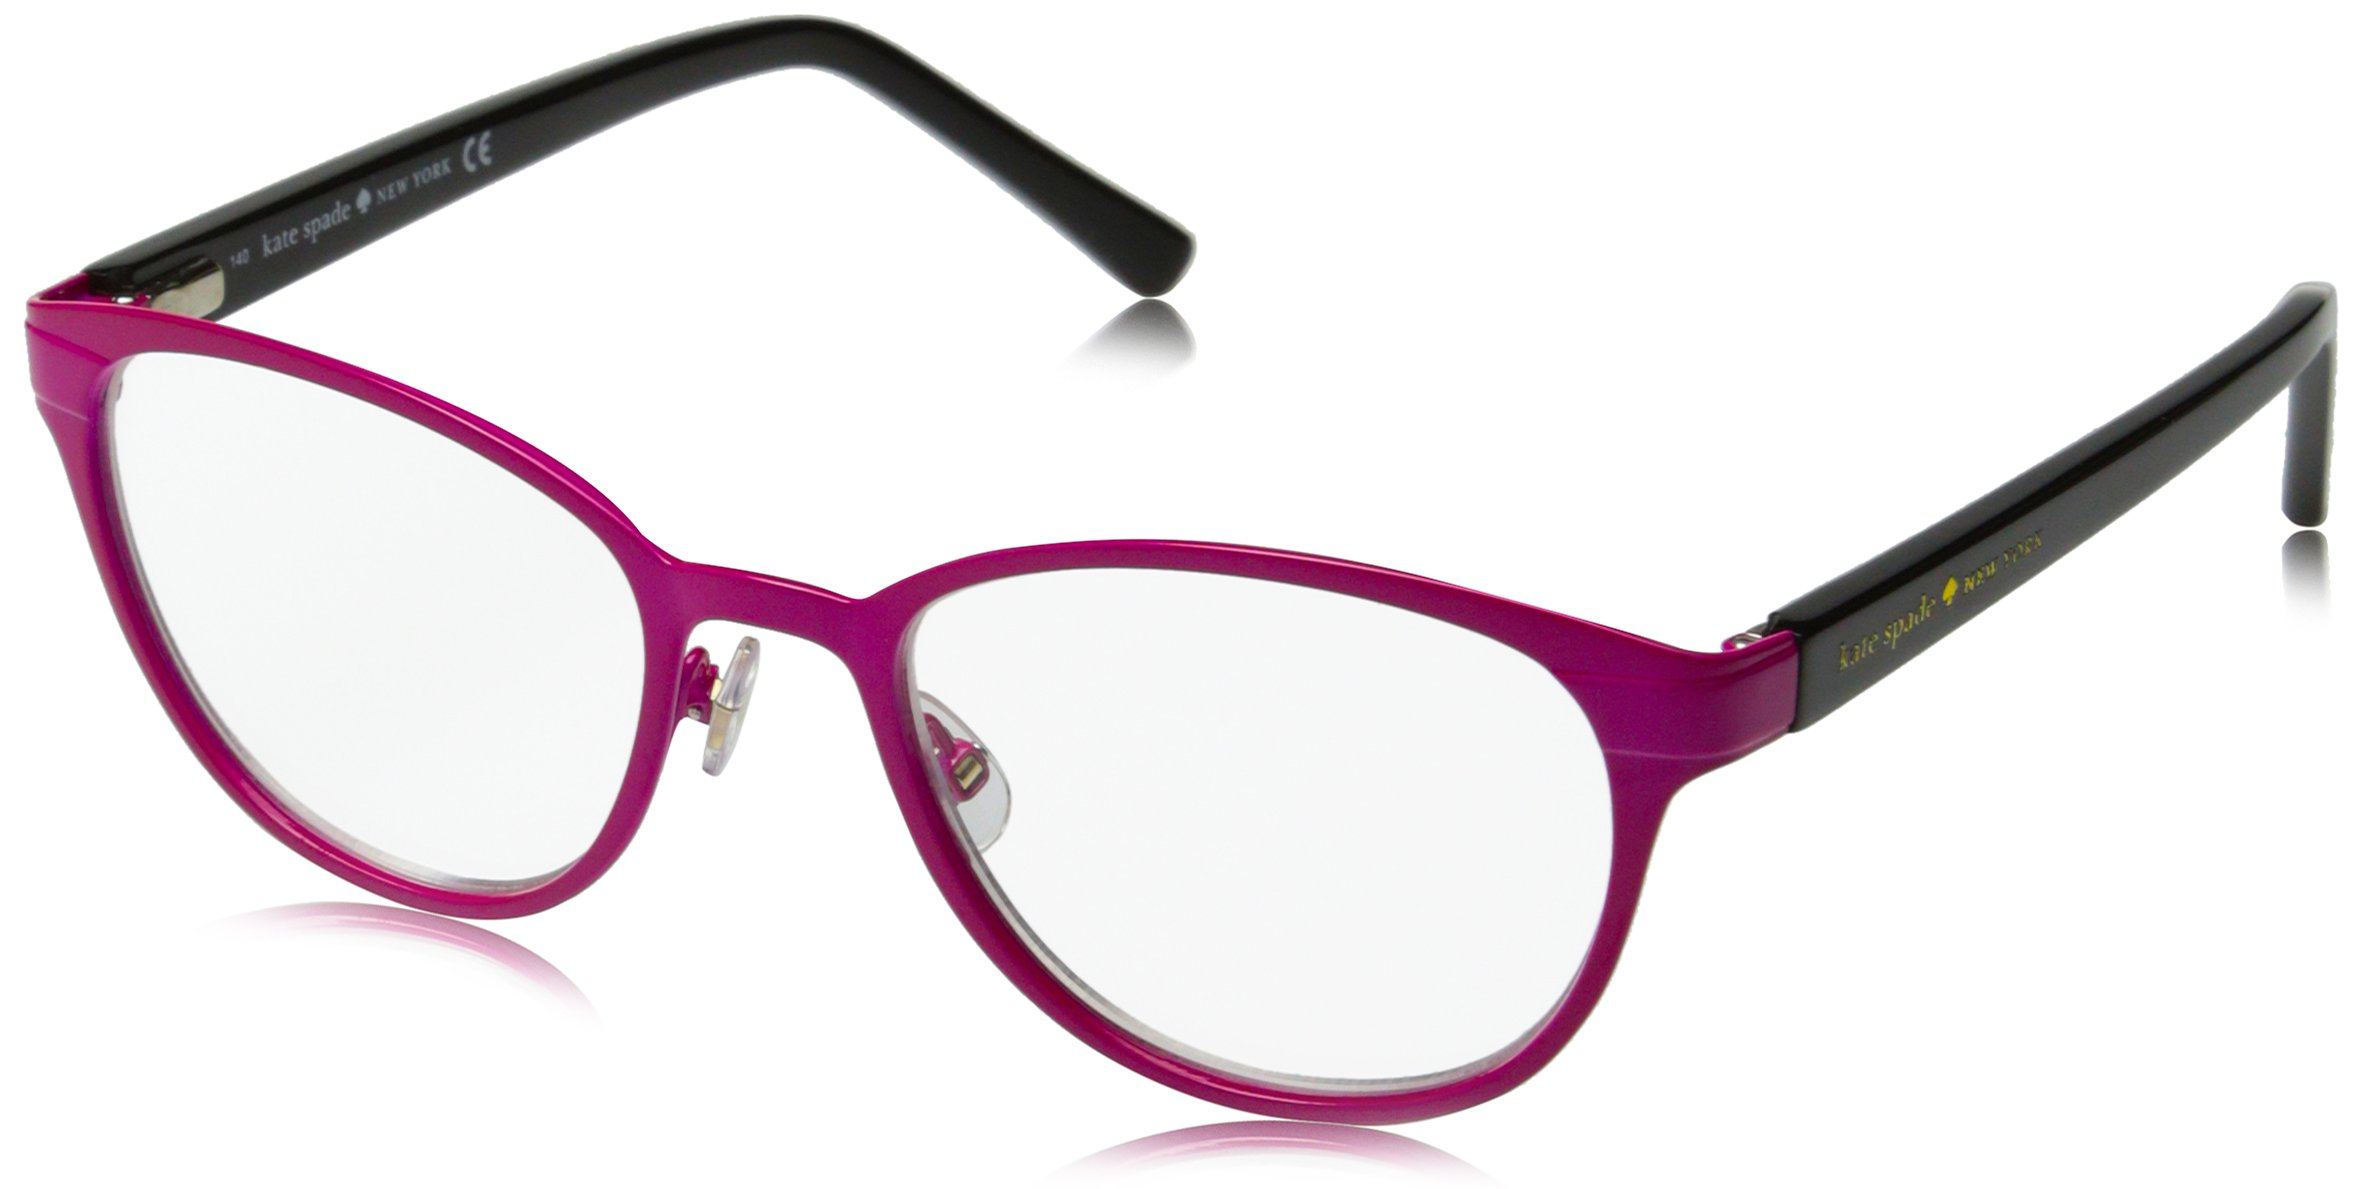 Kate Spade Women's Ebba Oval Reading Glasses, Pink Black 2.0 & Clear, 2